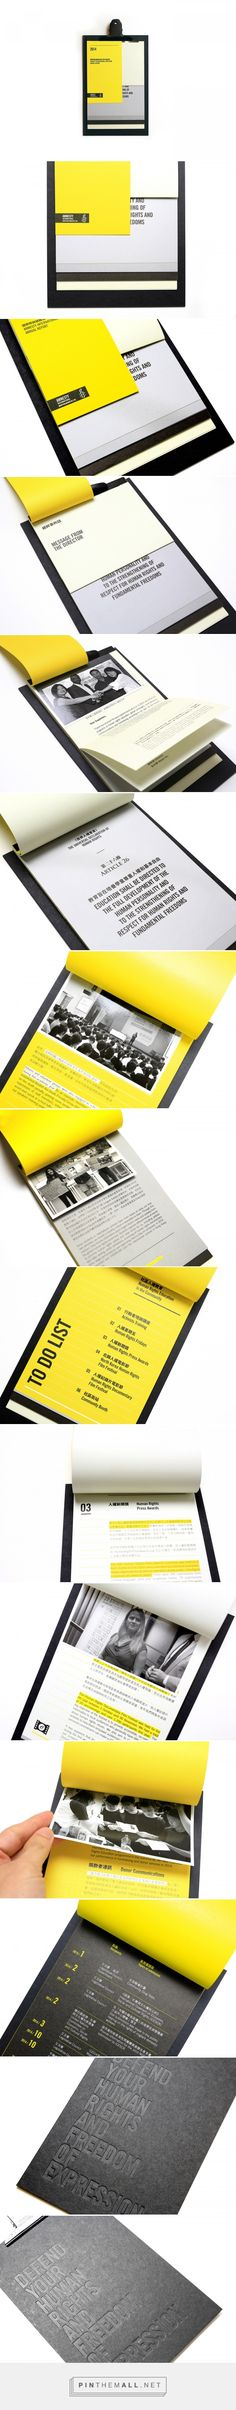 Amnesty International Hong Kong Annual Report 2014-15 on Behance... - a grouped images picture - Pin Them All